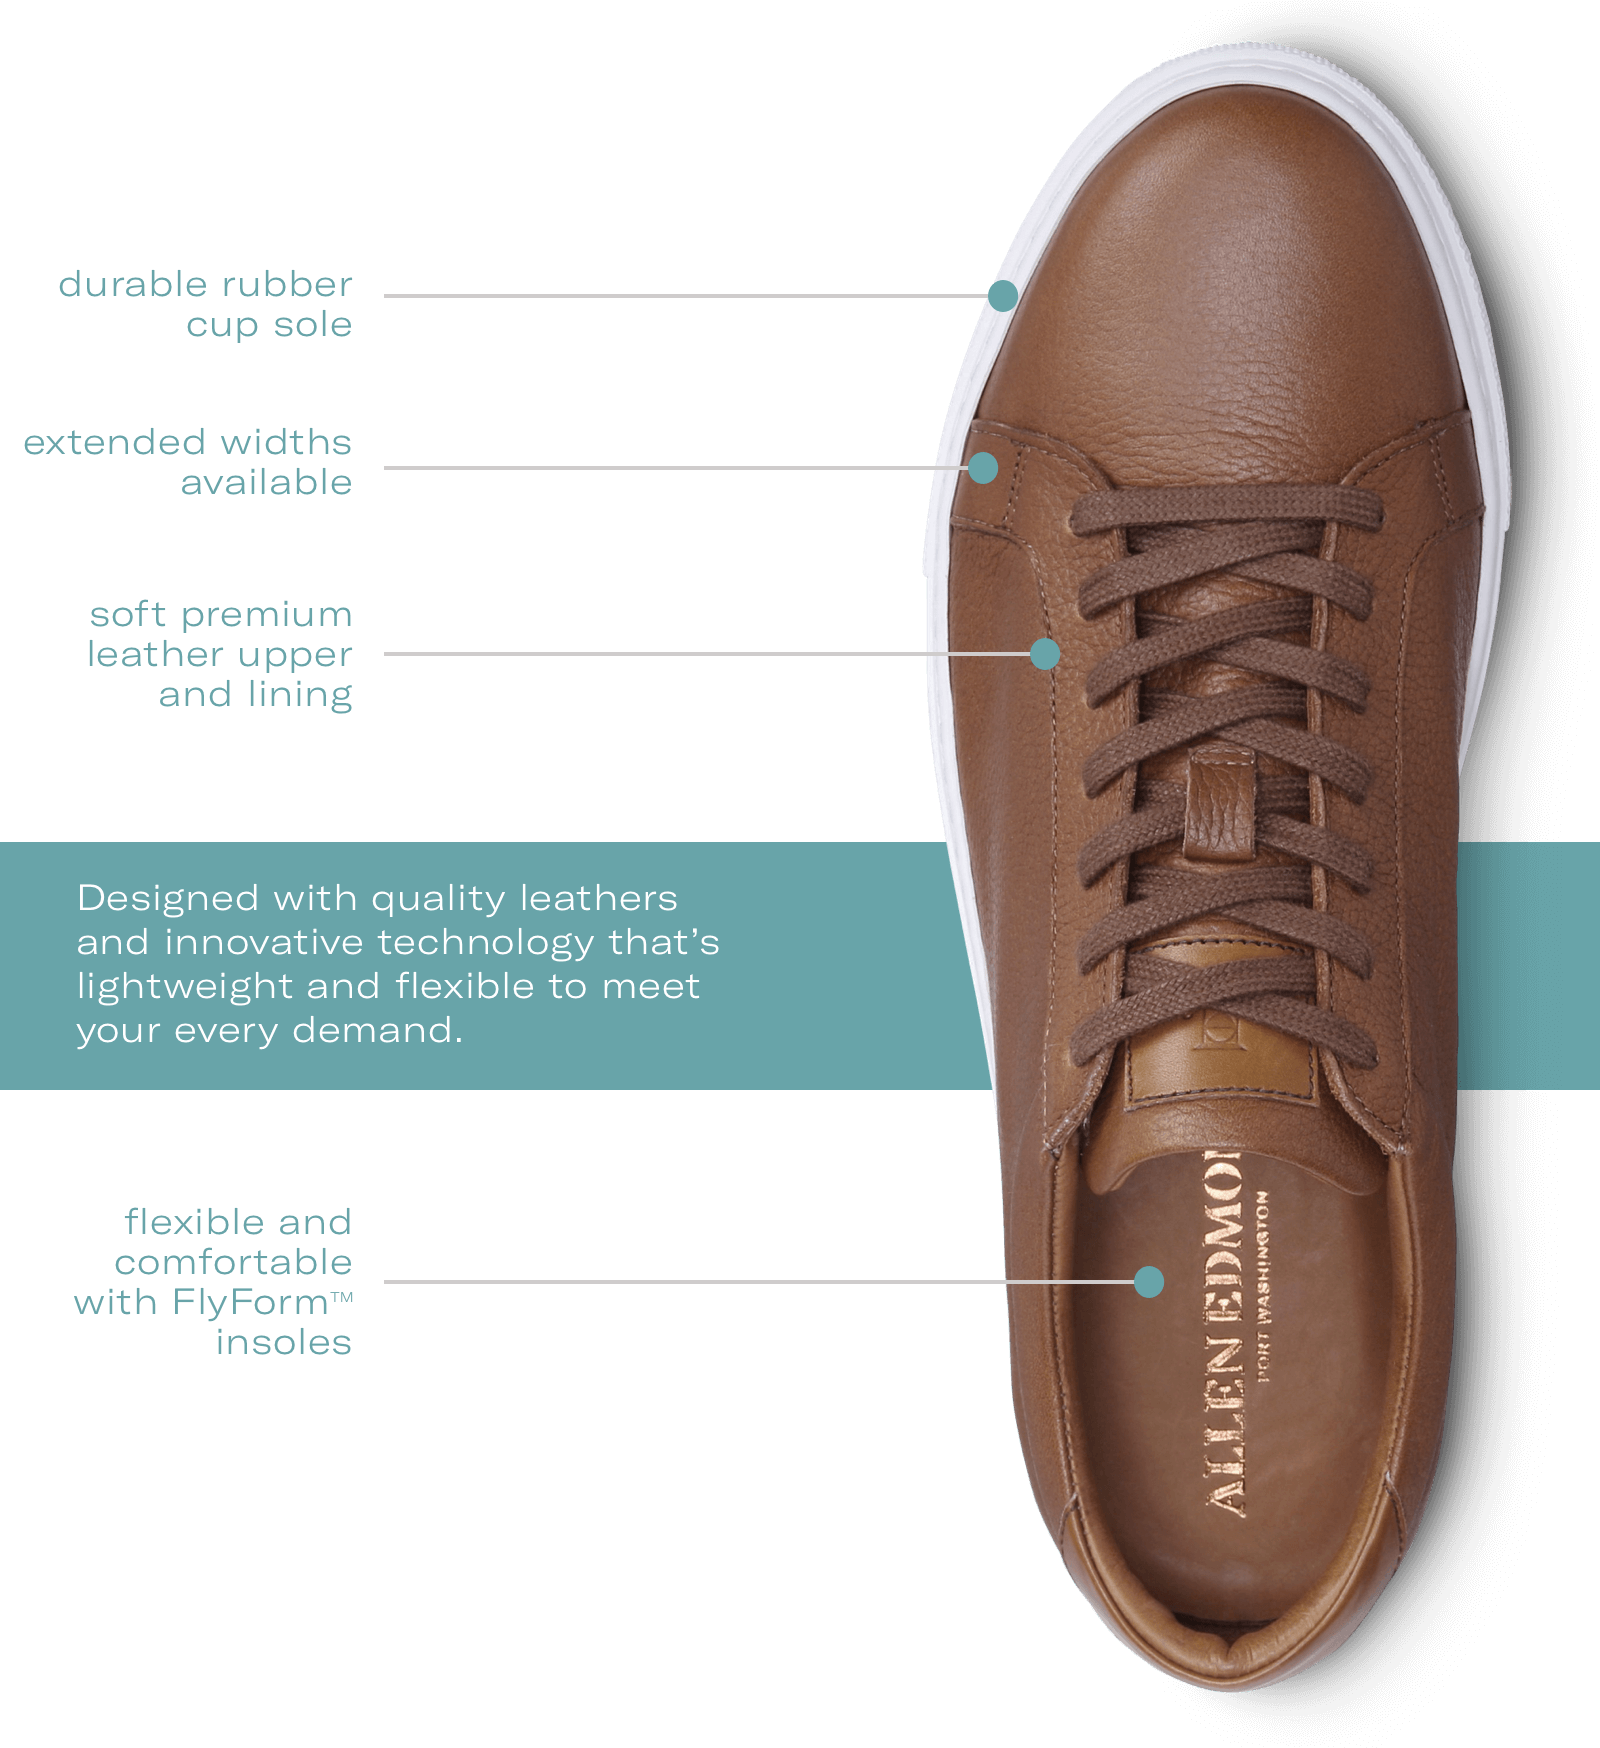 Allen Edmonds dress sneakers - Durable rubber cup sole. Soft premium leather upper and lining. Extended widths available. Designed with quality leathers and innovative technology that's lightweight and flexible to meet your every demand. Flexible and comfortable with Flyform™ insoles.